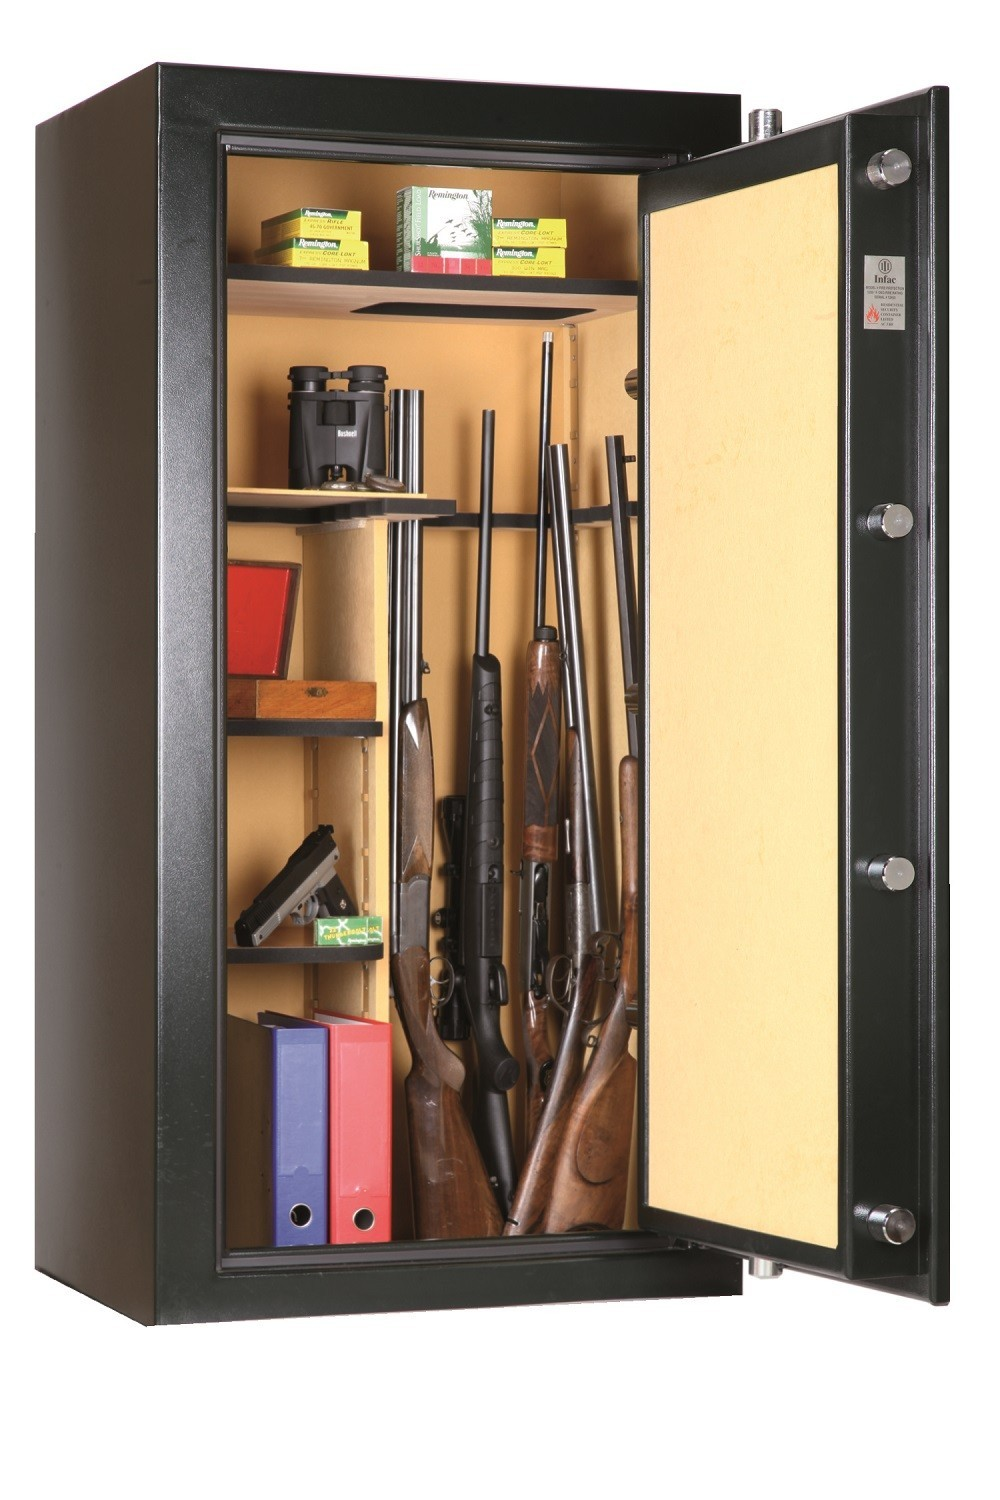 armoire forte anti feu infac big safe vert 12 24 armes armoires fortes pour armes longues made in chasse